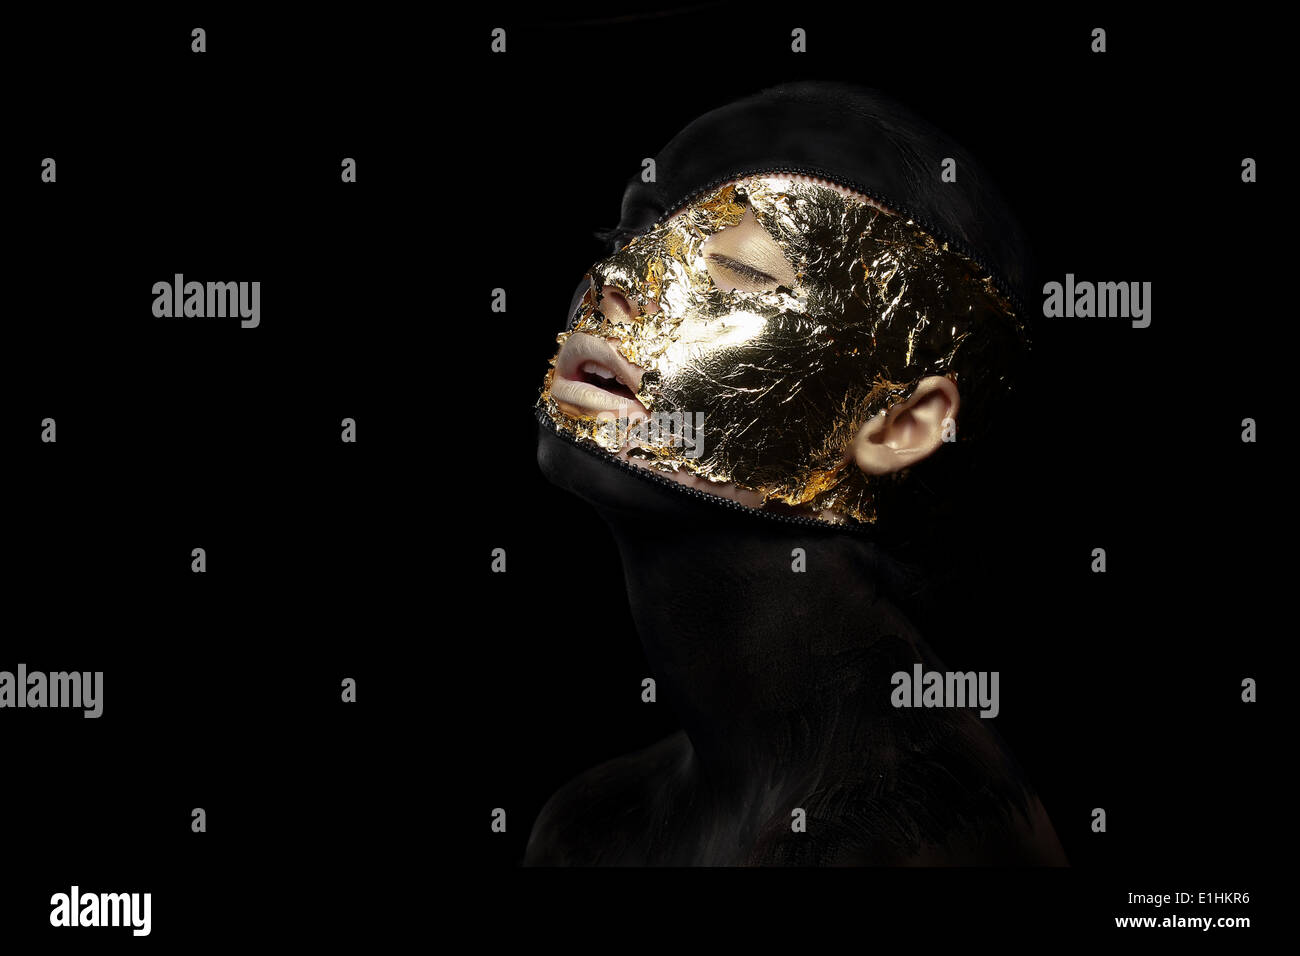 Fiction. Imagination. Futuristic Creature in Crazy Mystic Mask and Gilt - Stock Image